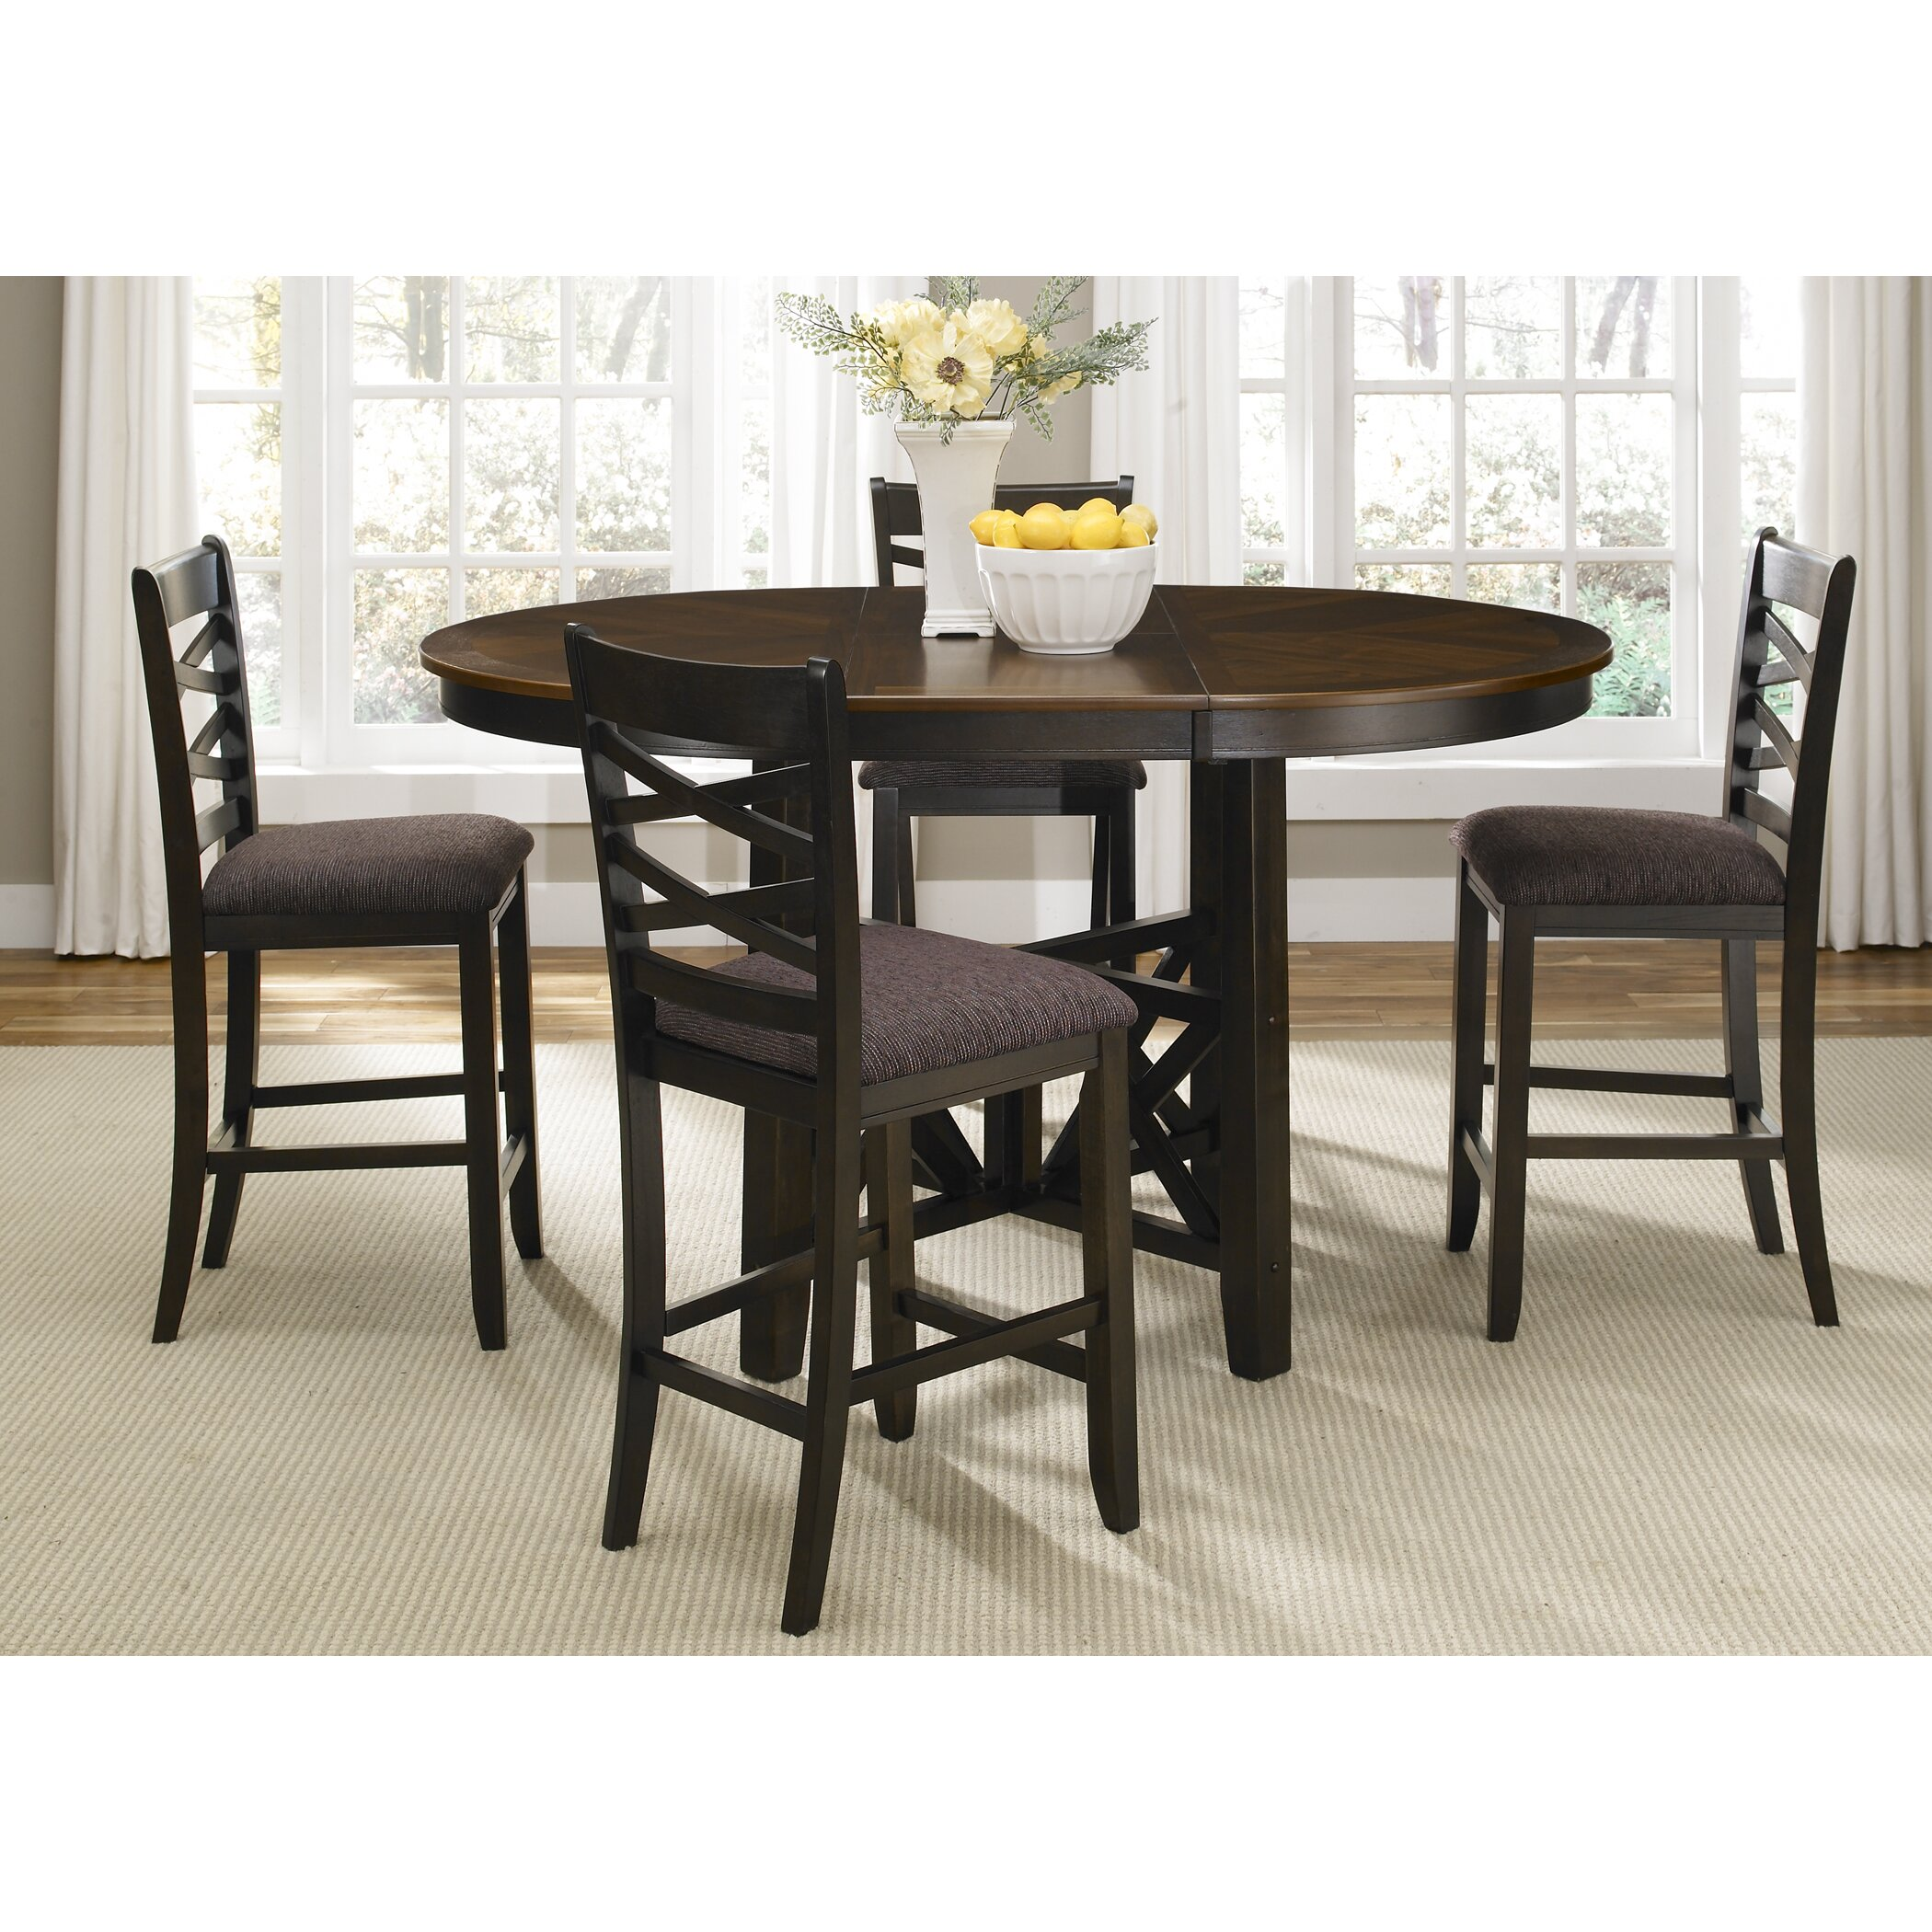 Liberty furniture bistro ii 5 piece dining set reviews for Breakfast sets furniture